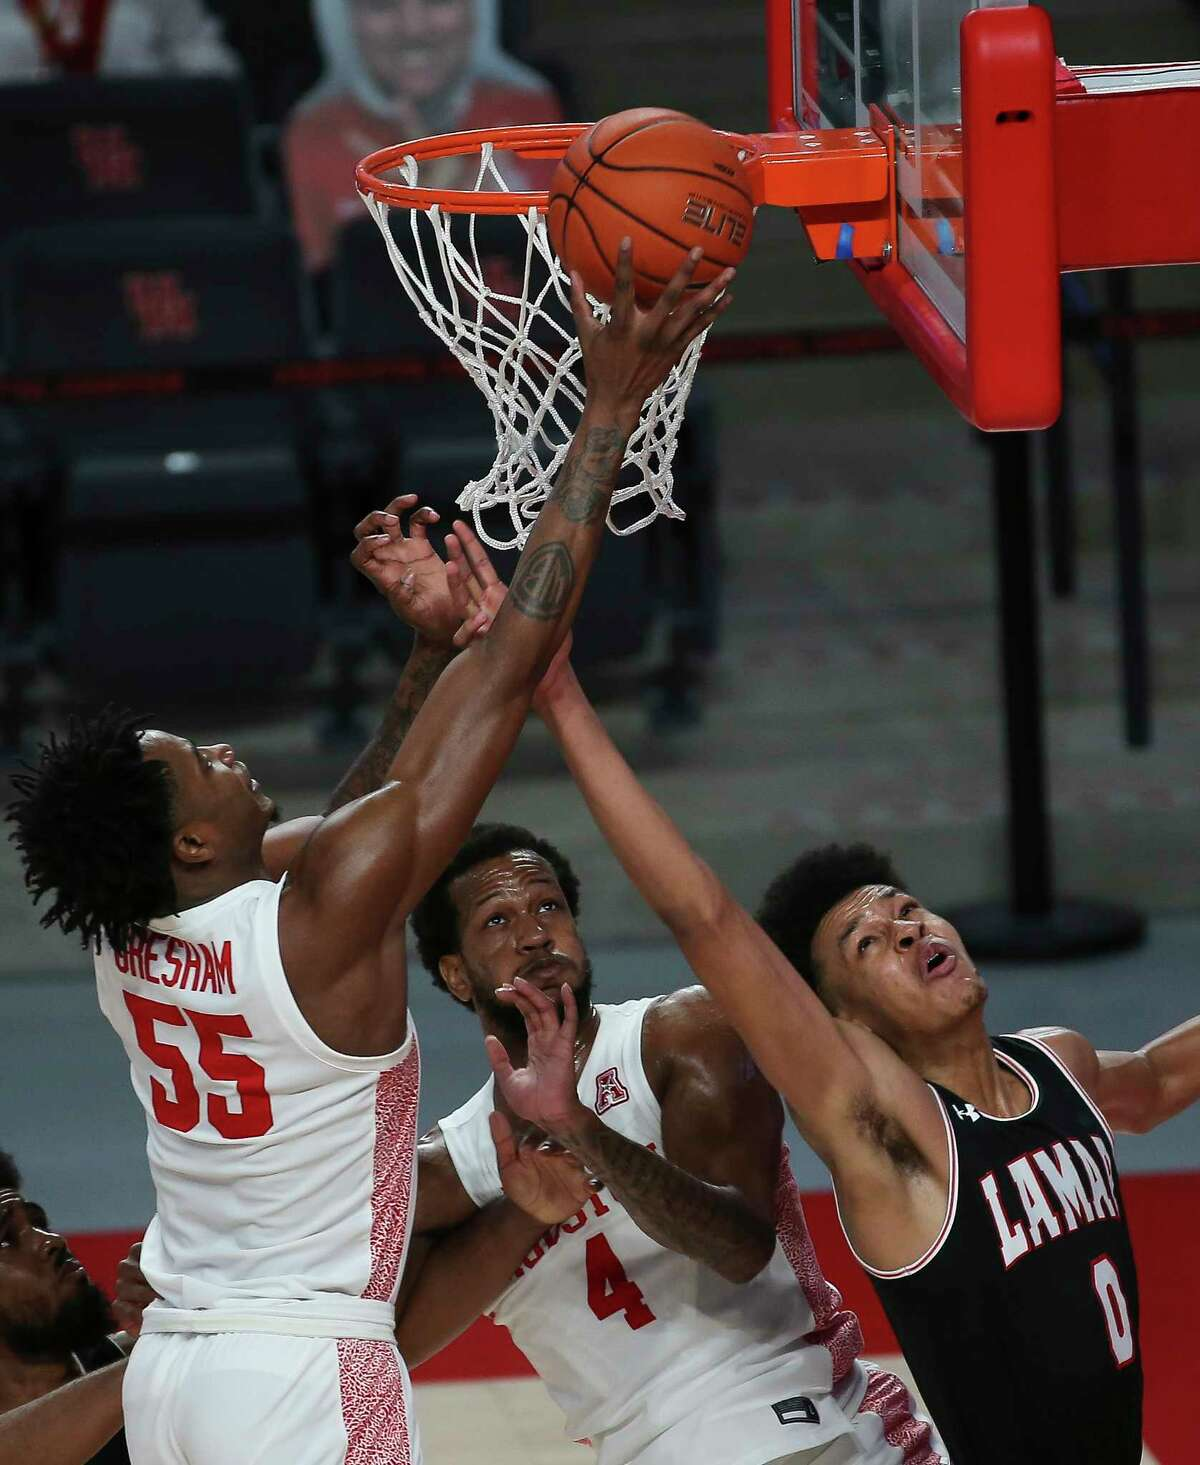 Houston Cougars forward Brison Gresham (55) puts a rebound into the basket wihle Lamar Cardinals center David Muoka (0) is tyring to stop him during the first half of a American Athletic Conference game Wednesday, Nov. 25, 2020, at Fertitta Center in Houston.